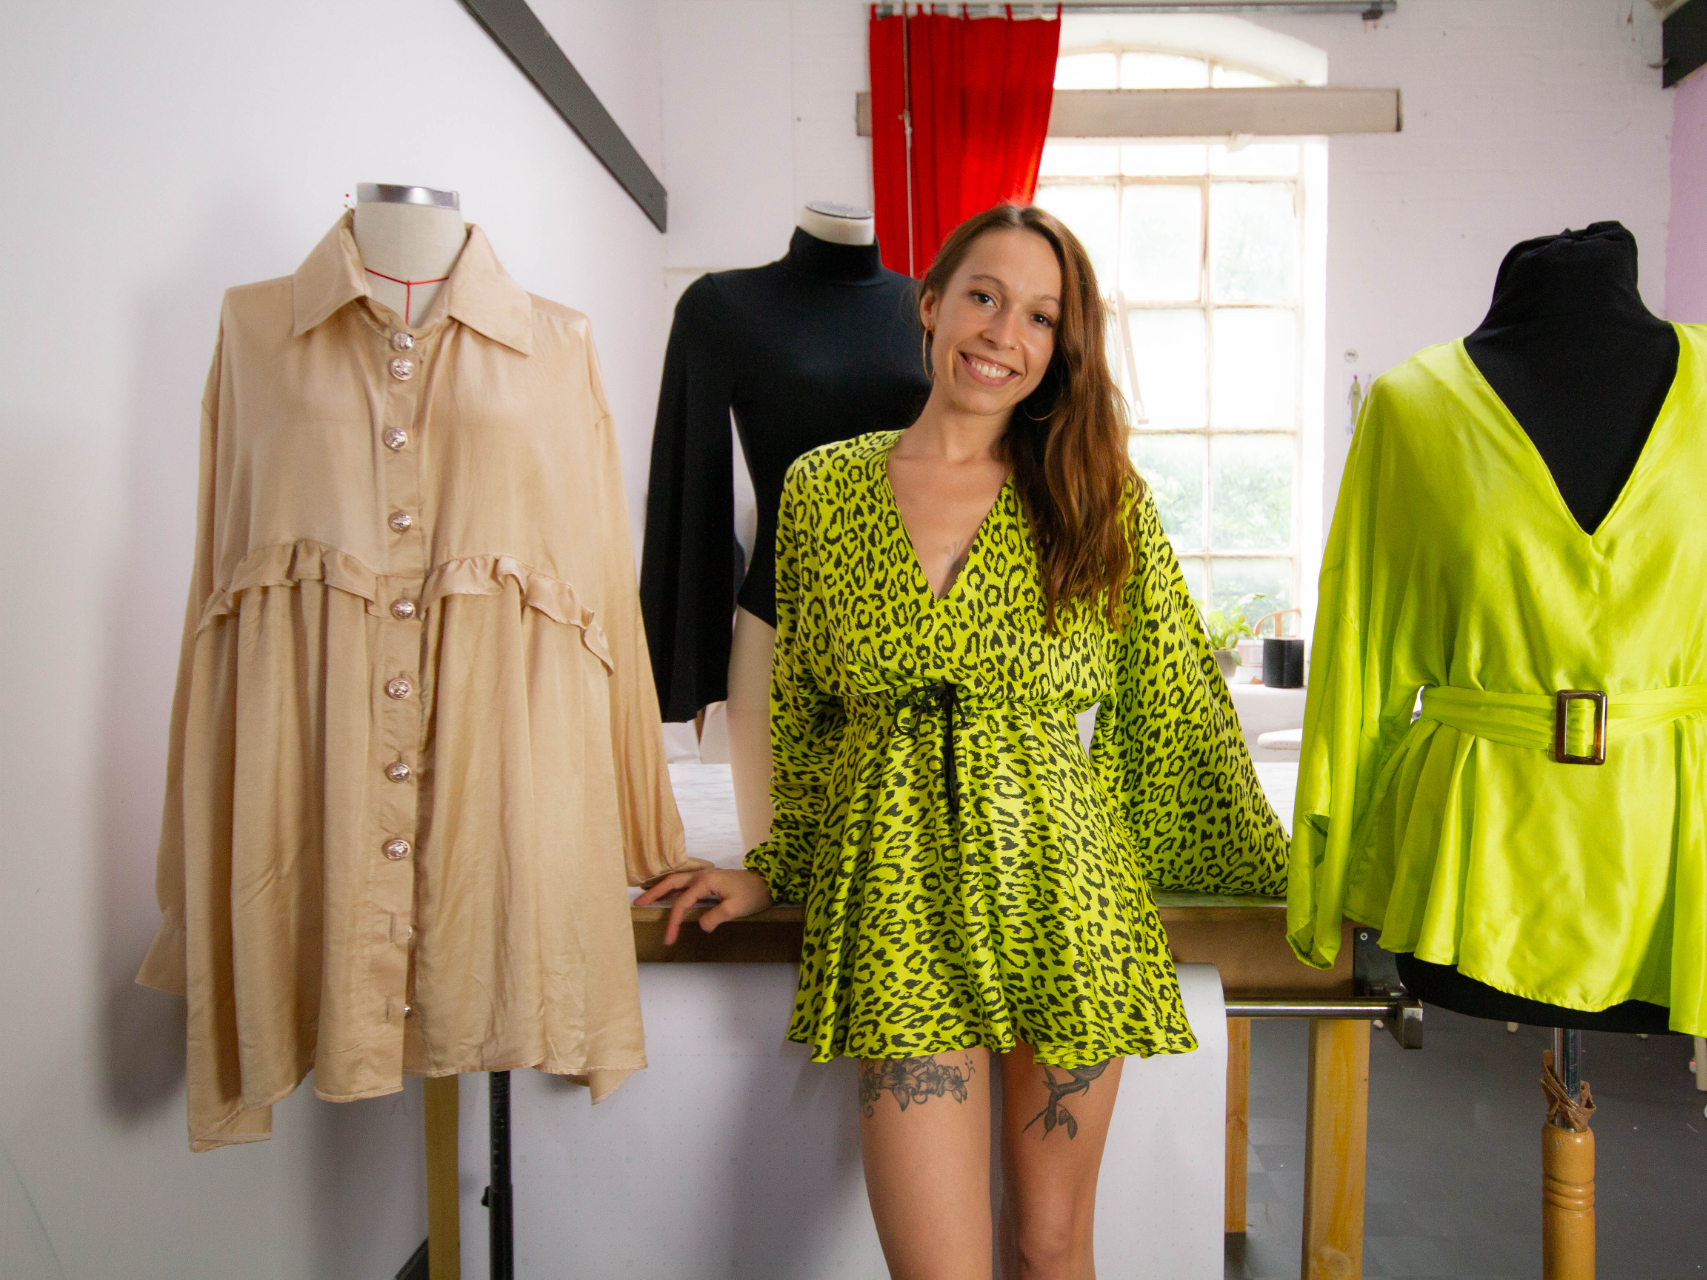 Textile capital Leicester unveils new darling of sustainable fashion